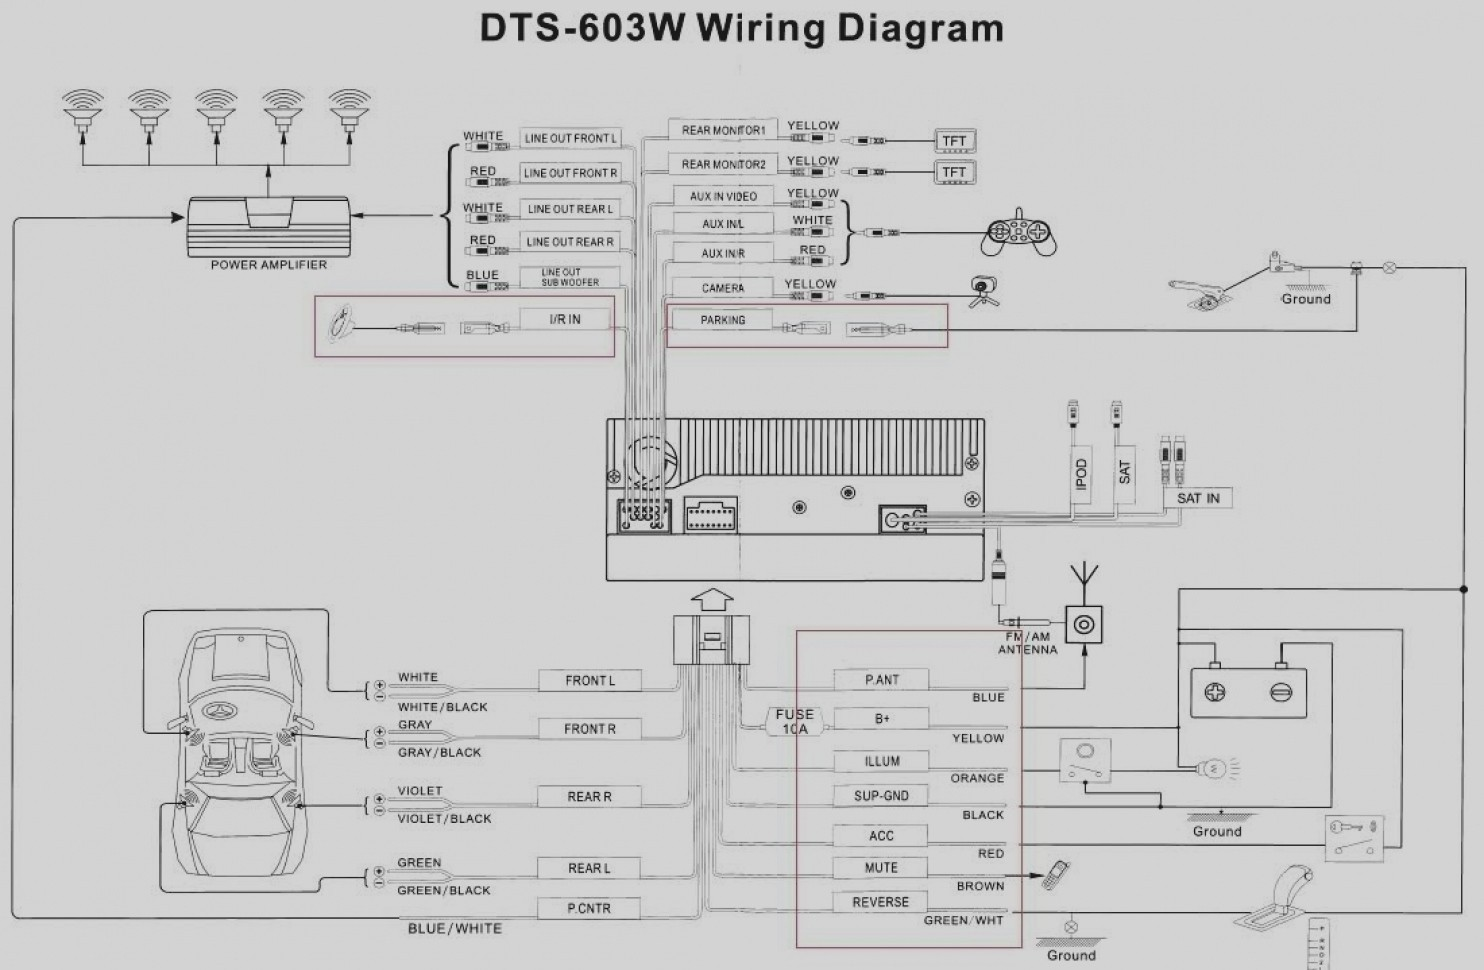 2004 chevrolet wiring diagram dk 7997  tahoe stereo wiring diagram 2004 chevy trailblazer stereo 2004 gm wiring diagram tahoe stereo wiring diagram 2004 chevy